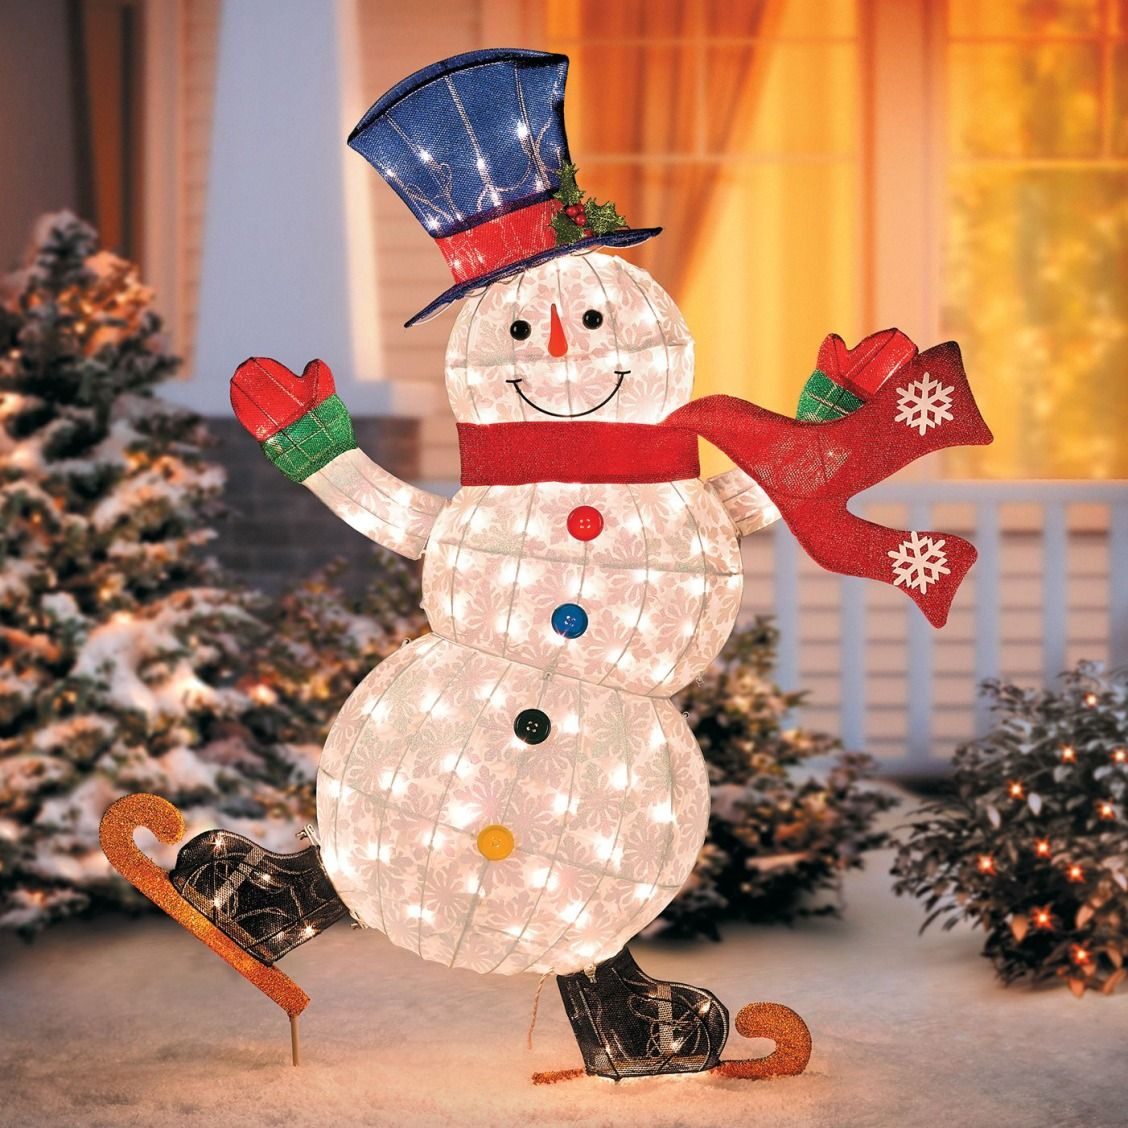 A Cheerful Ice Skating Snowman Is Just The Christmas Decoration Your Yard Needs